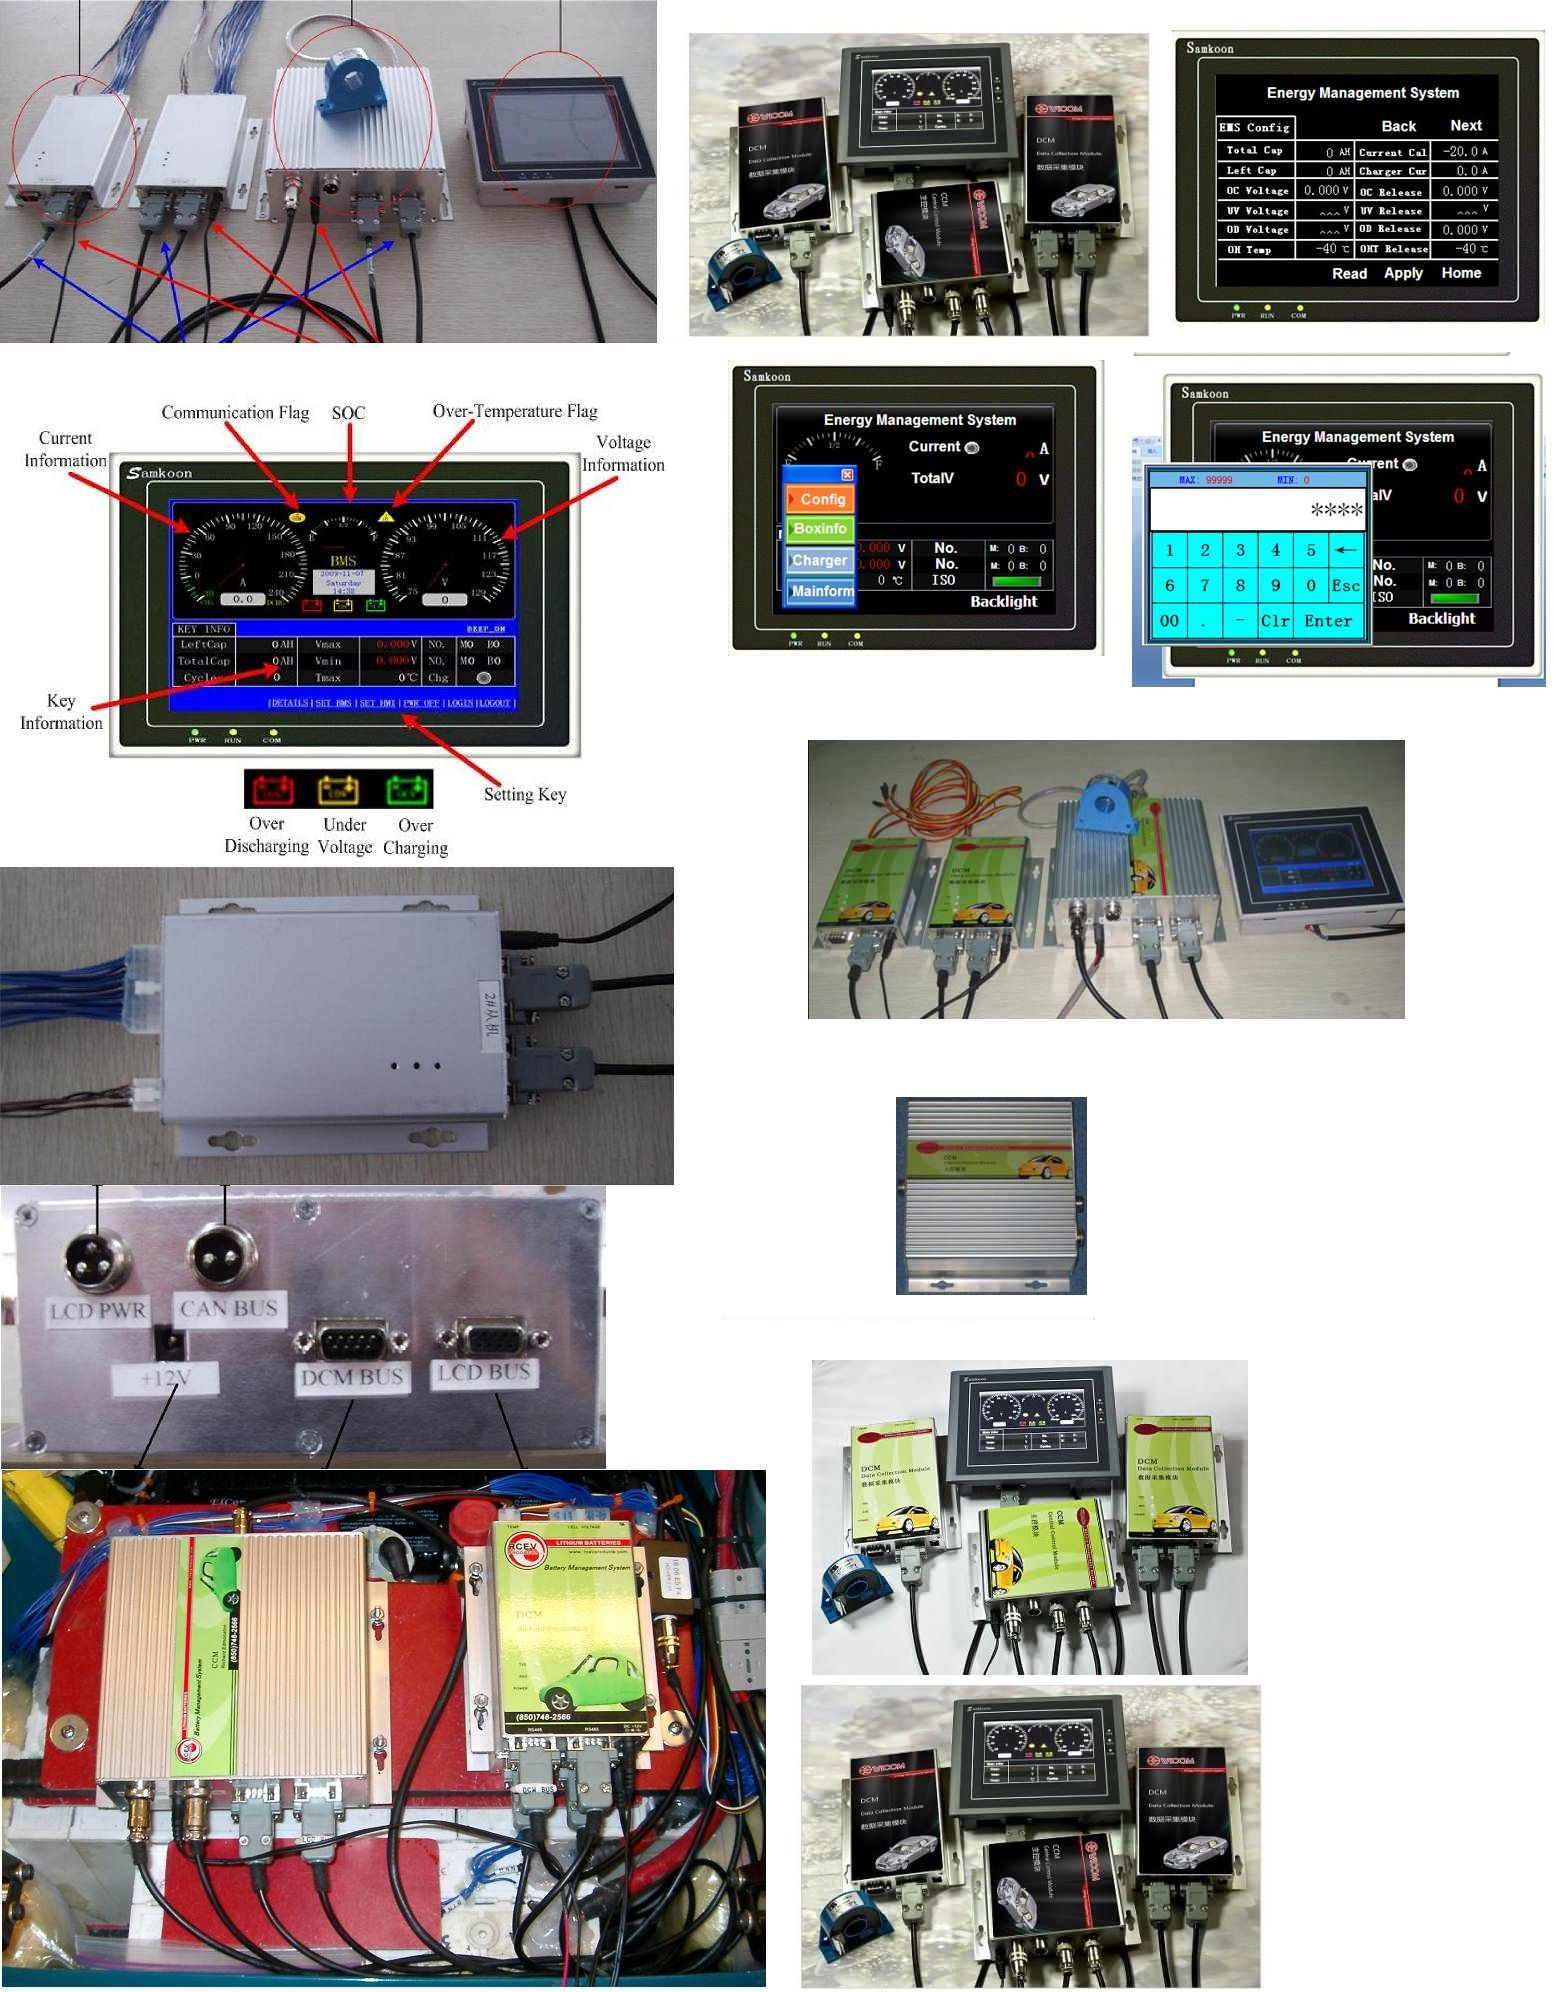 Li Ion Bms Options Orion Wiring Diagram Click To See The